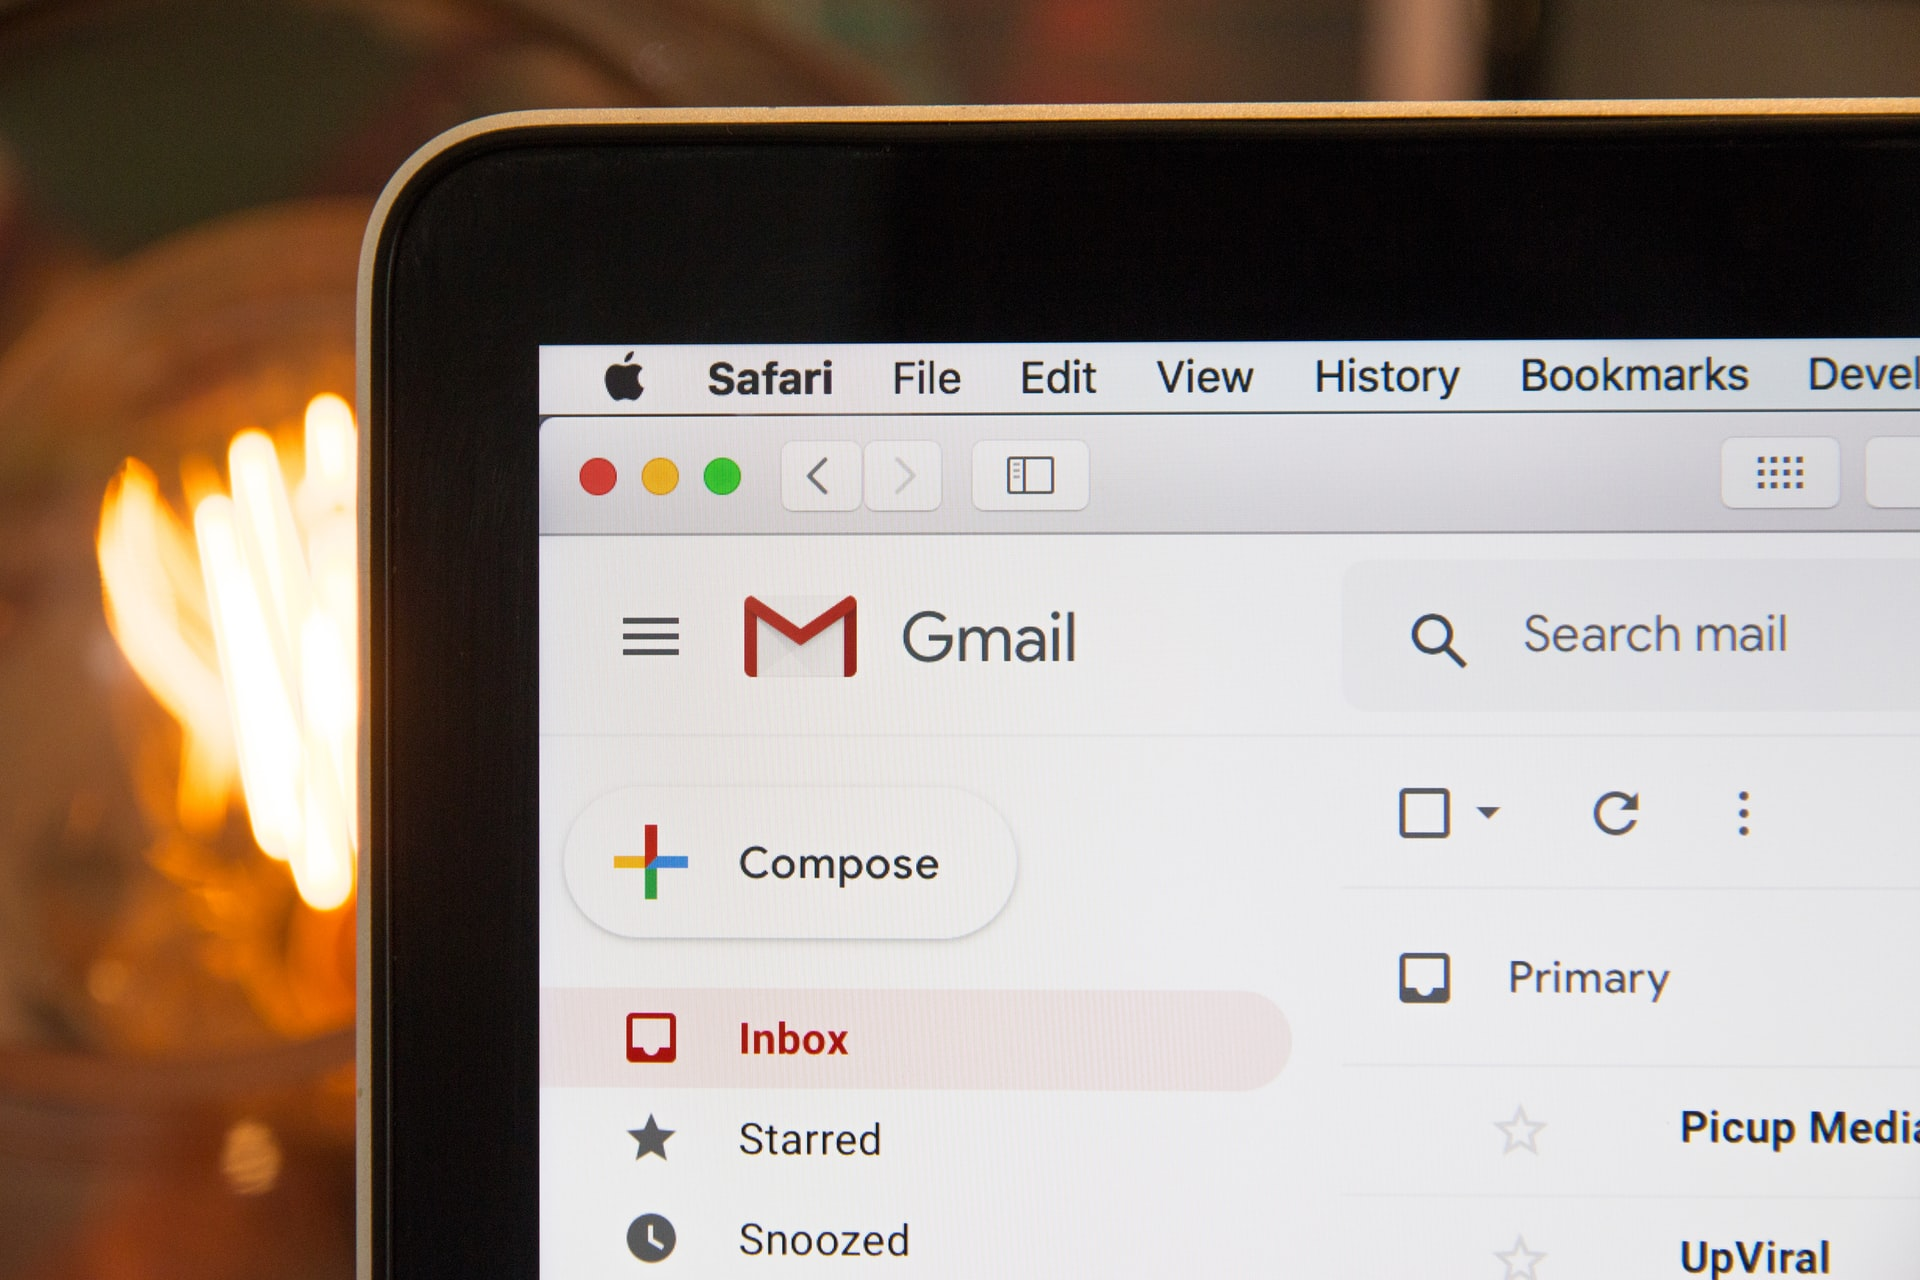 Image showing Gmail inbox